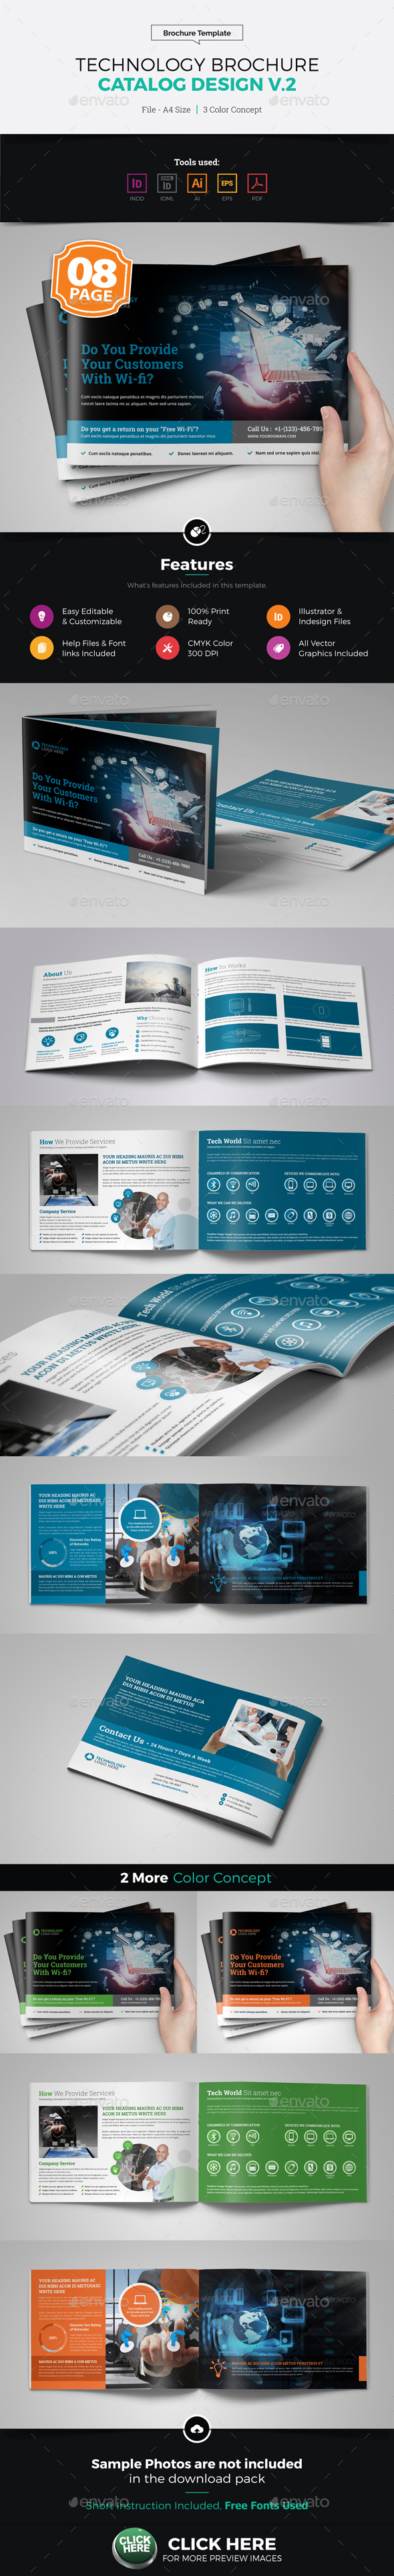 Technology Brochure Catalog Template v2 - Corporate Brochures